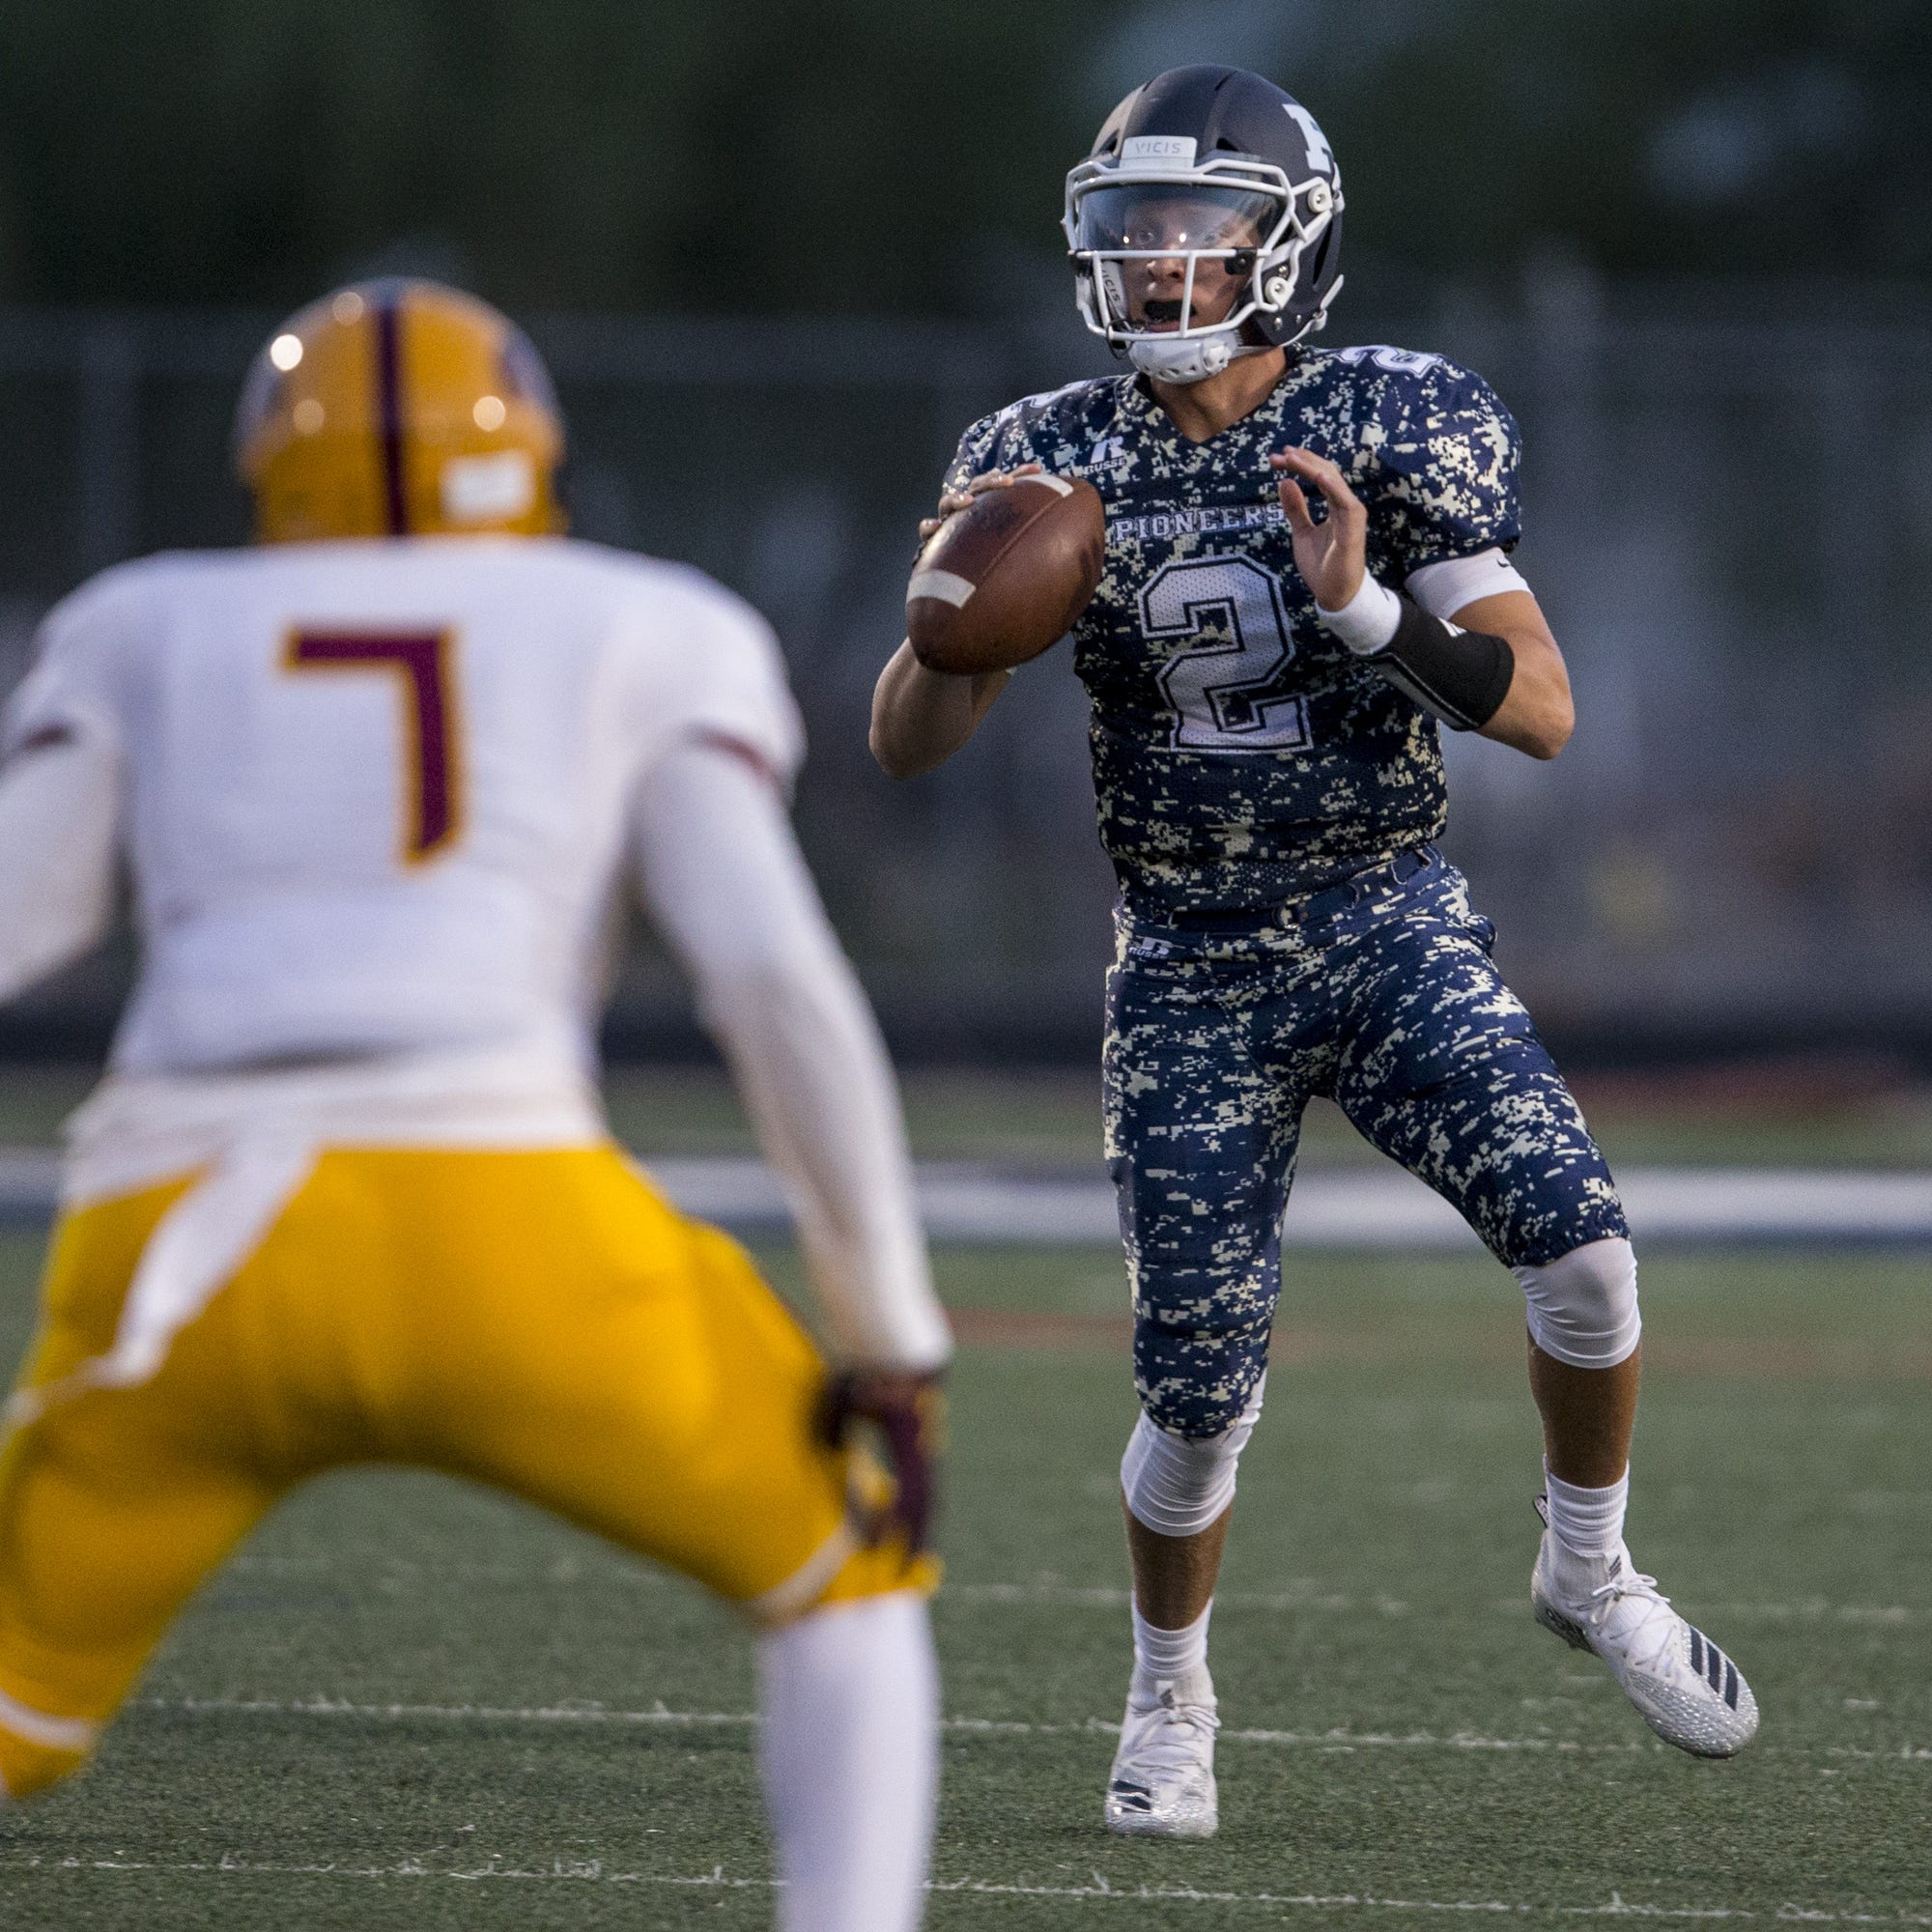 Pinnacle QB Spencer Rattler ruled ineligible for rest of season after violating school policy